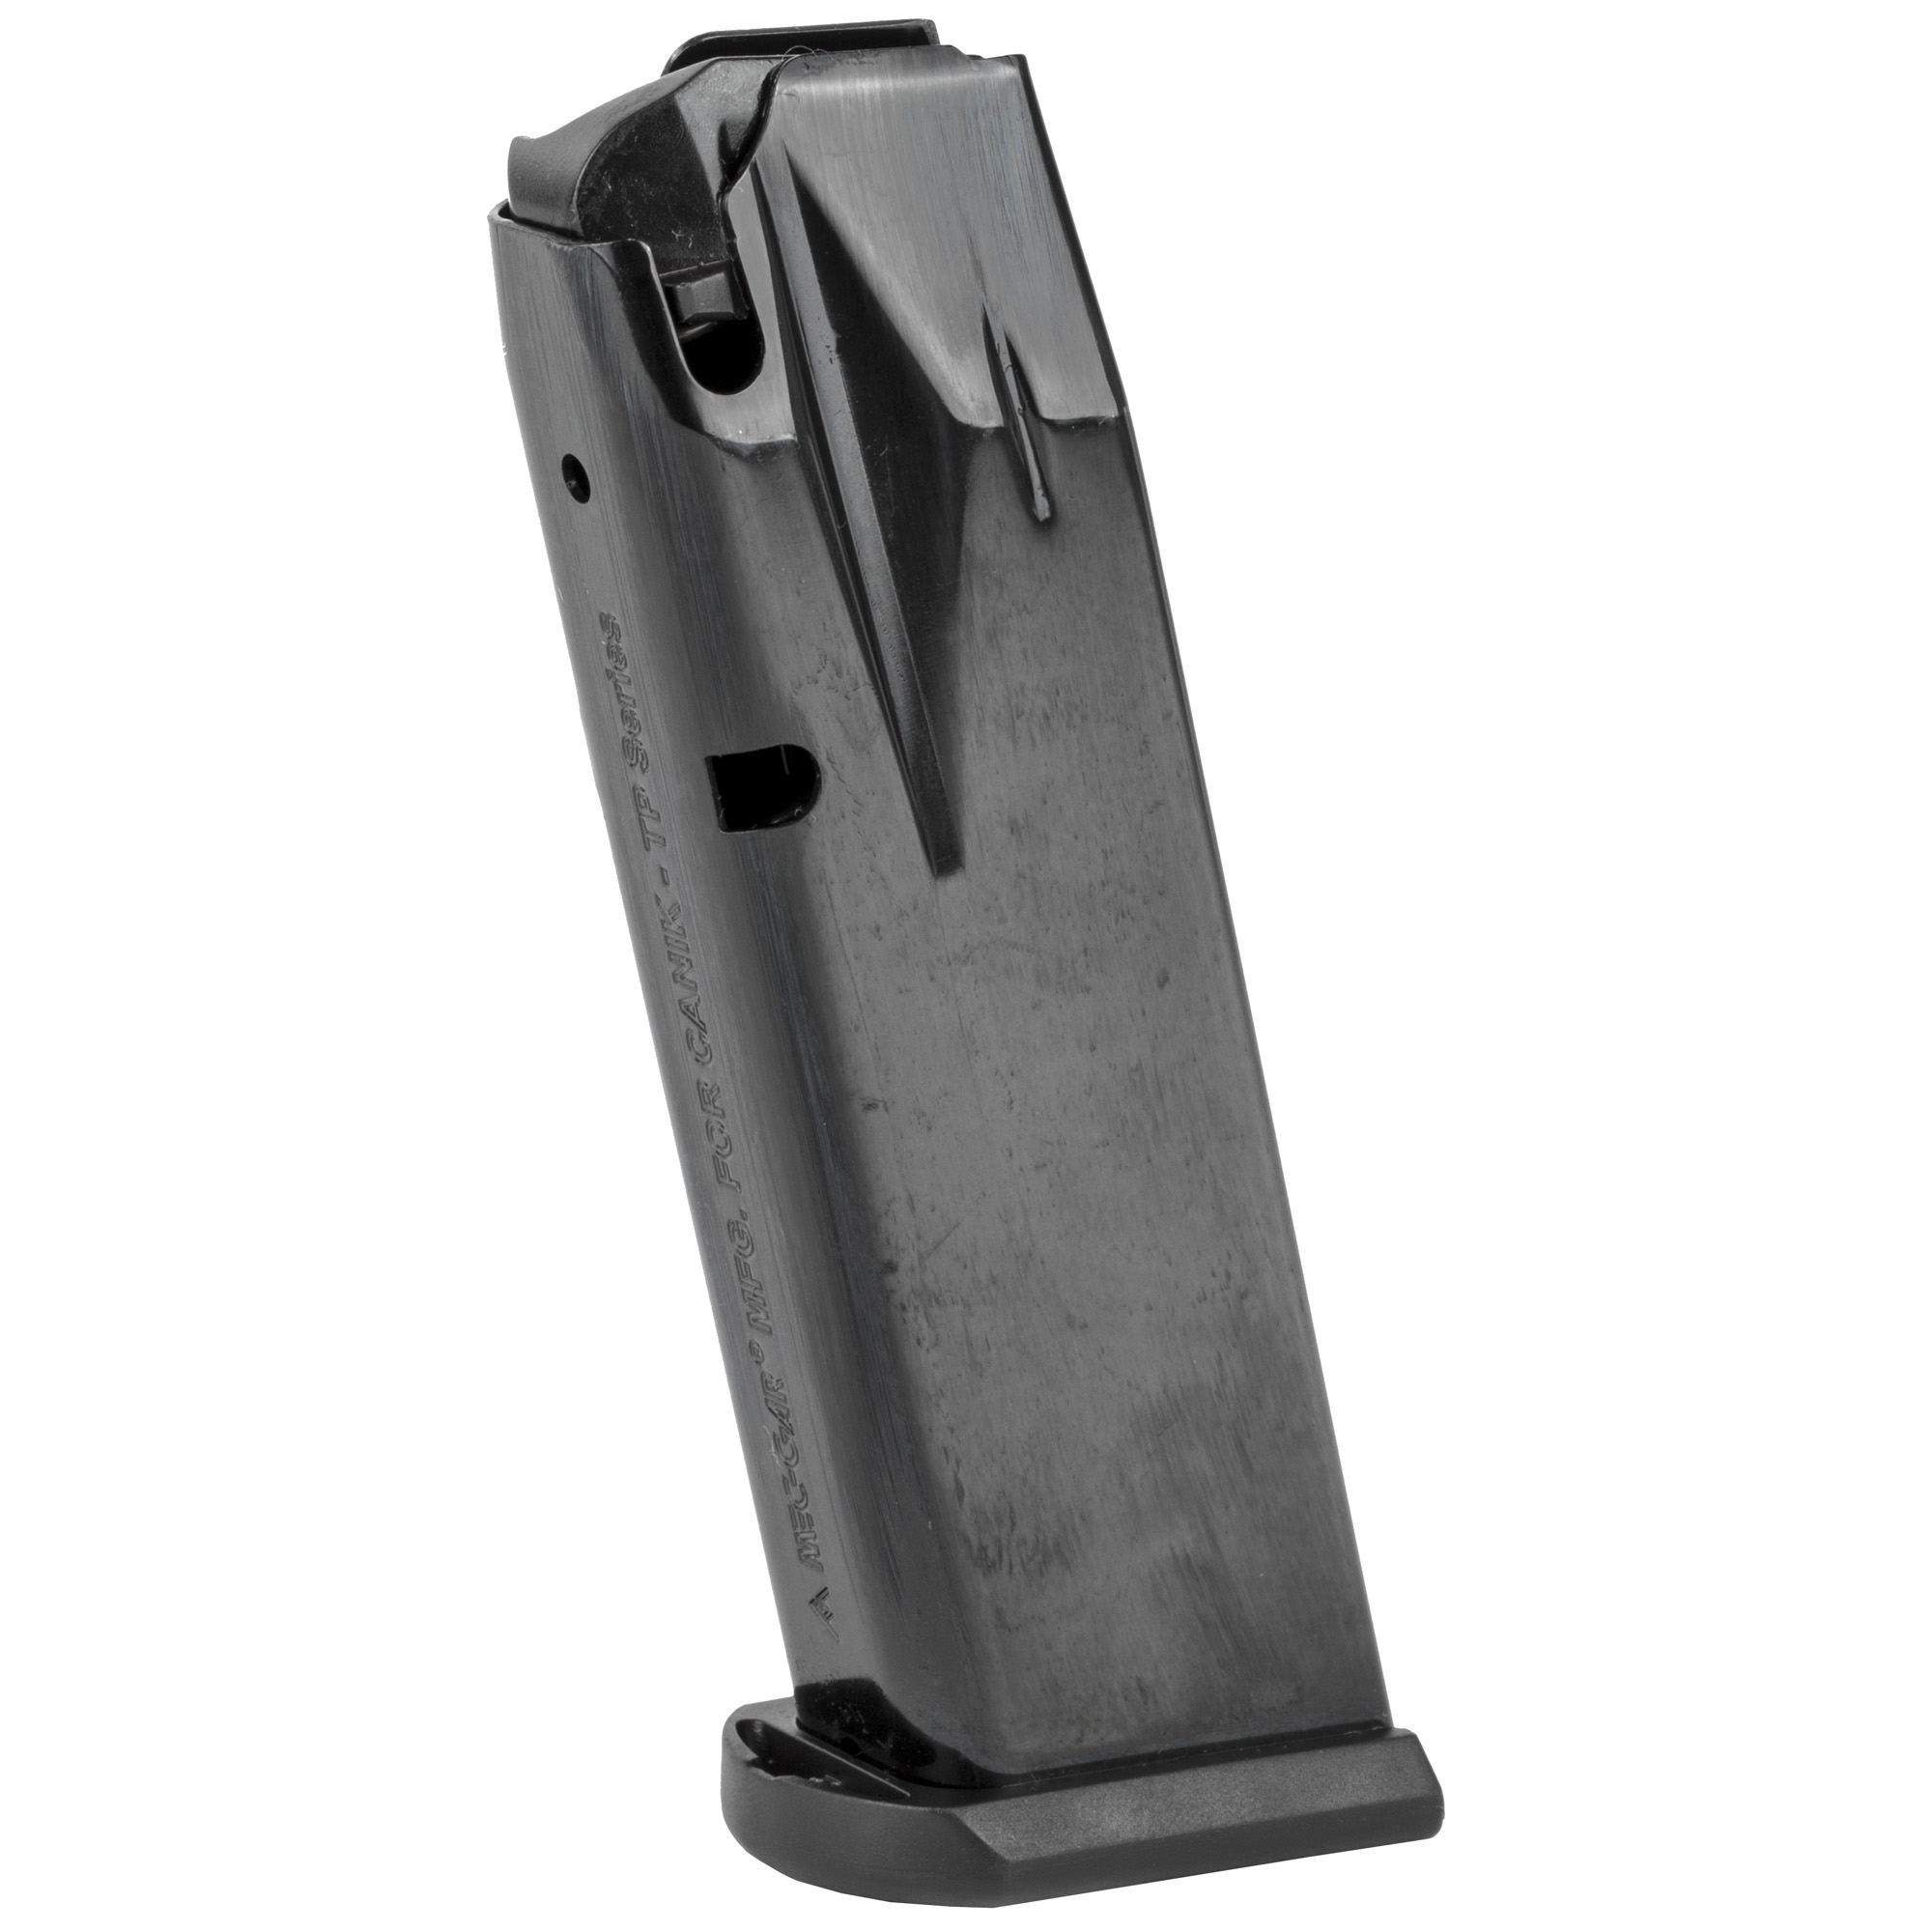 The Century Arms TP9SF Elite magazine is a standard factory replacement magazine. Durable steel construction ensures flawless function and long-term reliability.